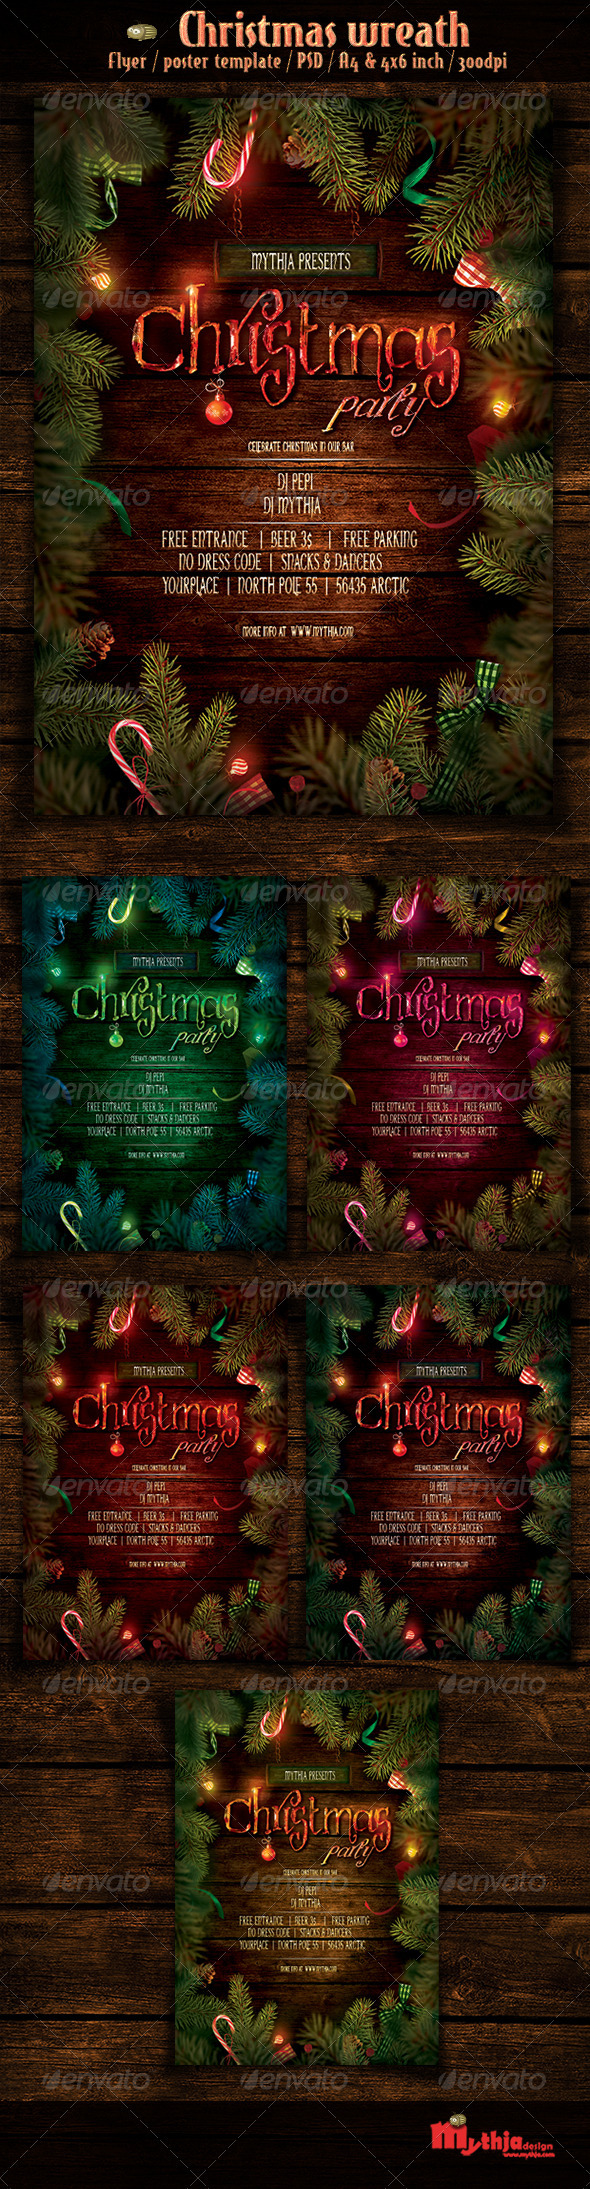 GraphicRiver Christmas Wreath Event Flyer Poster Template 3548586